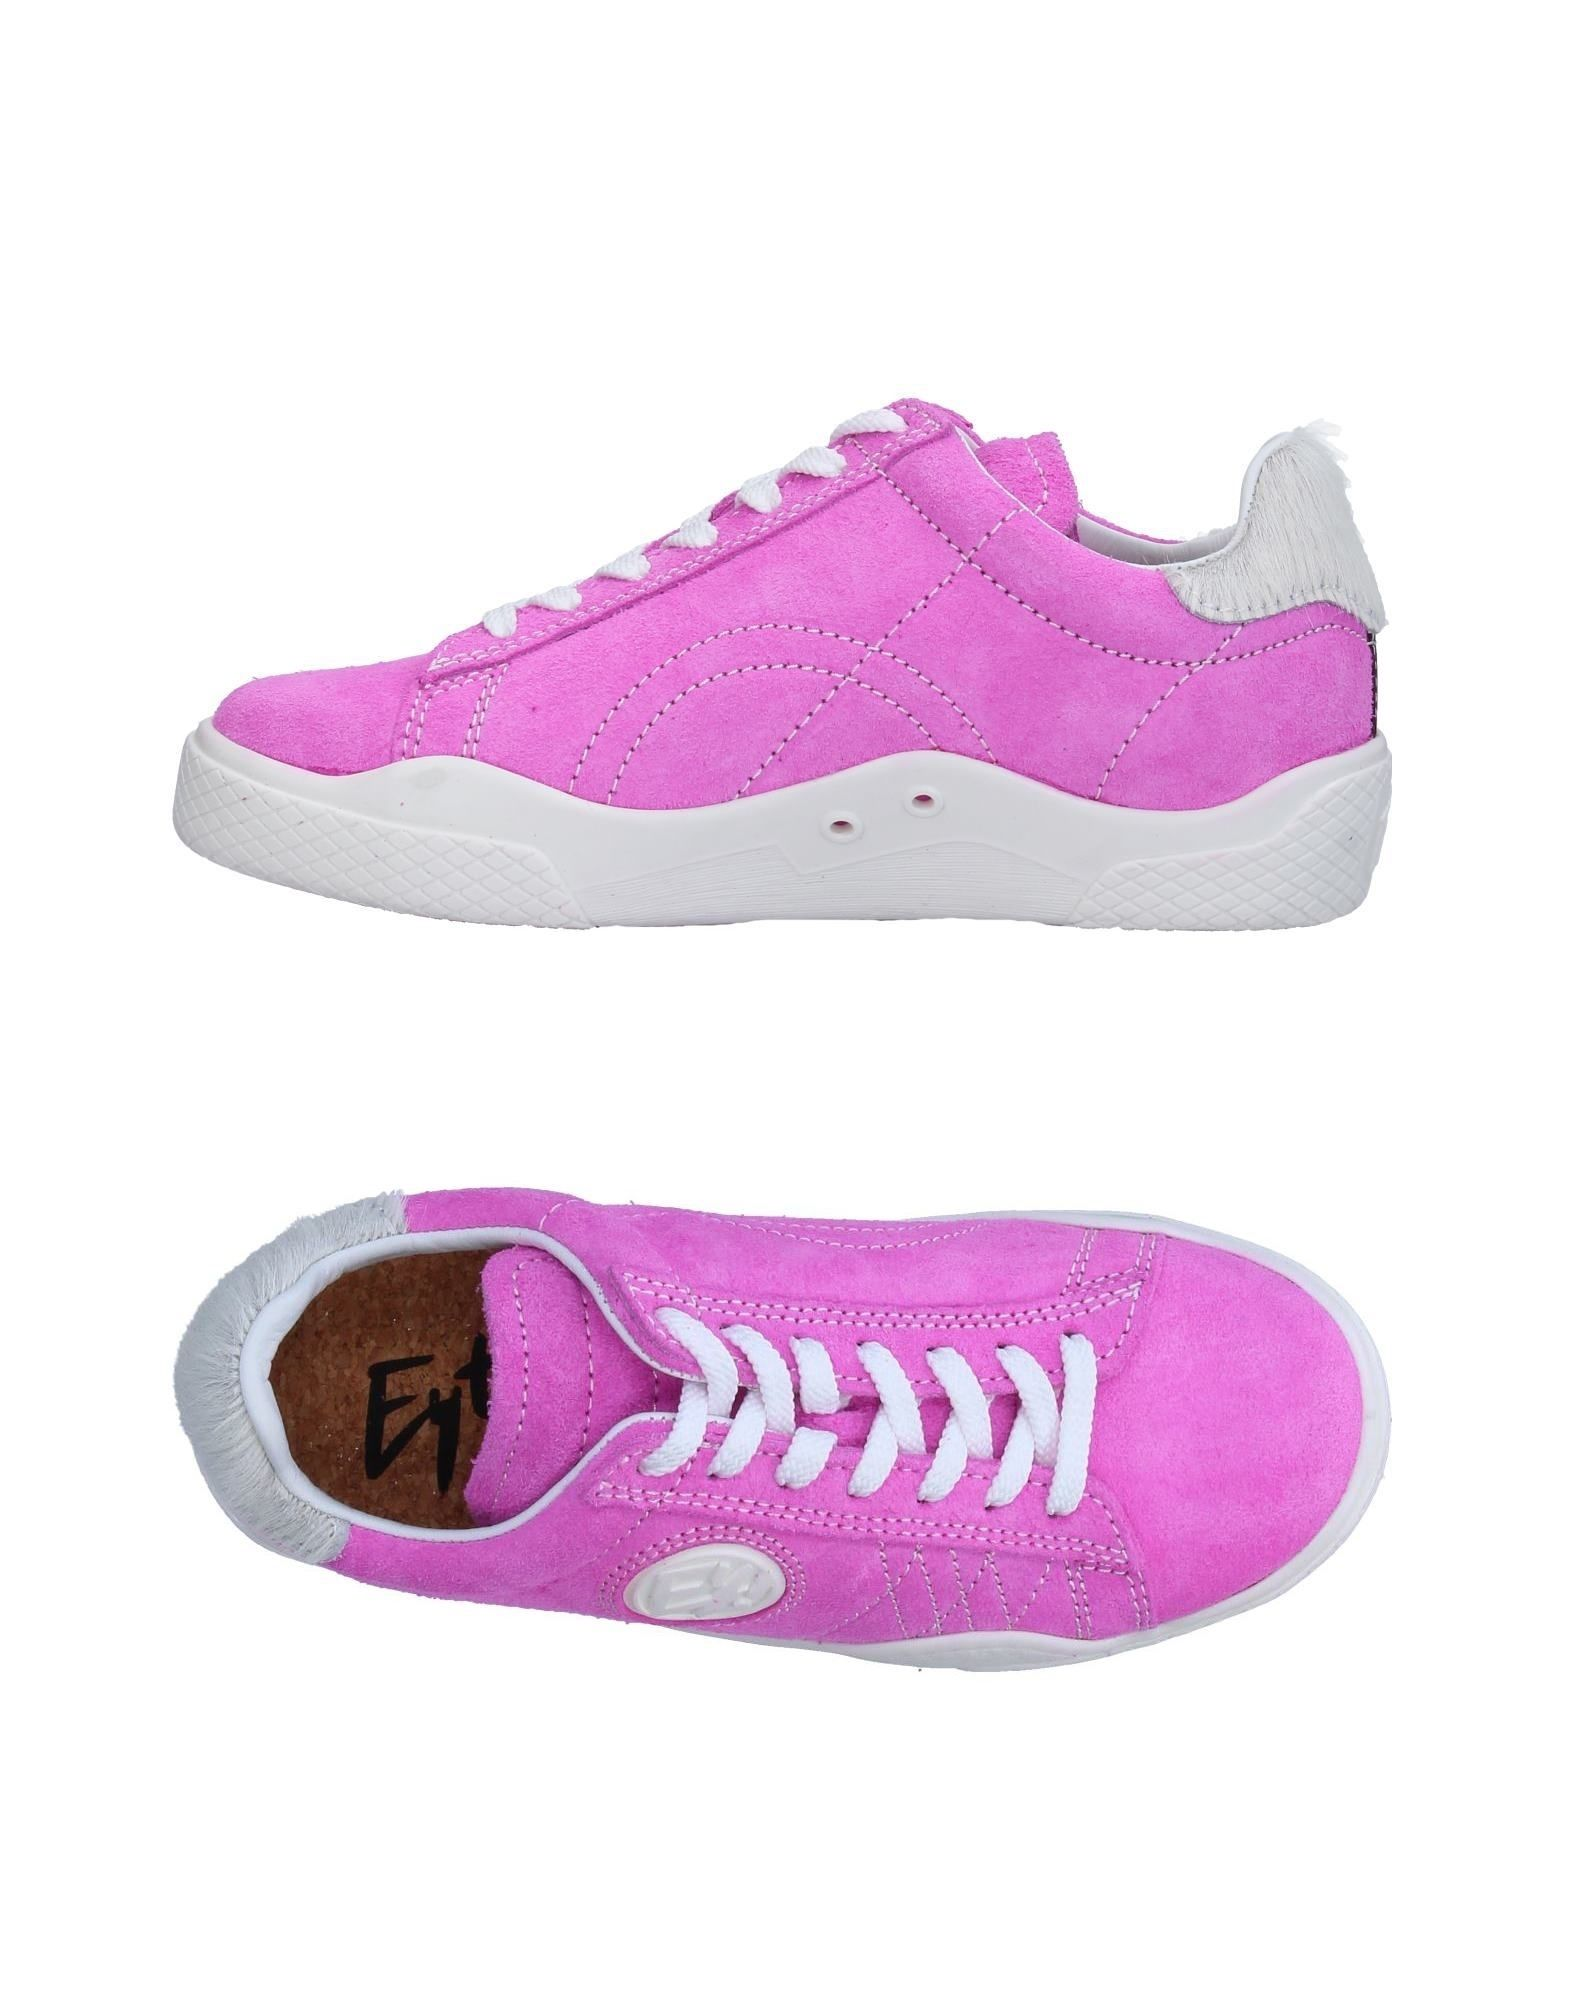 Acquista su online Sneakers Eytys Donna qvECxPxIwn